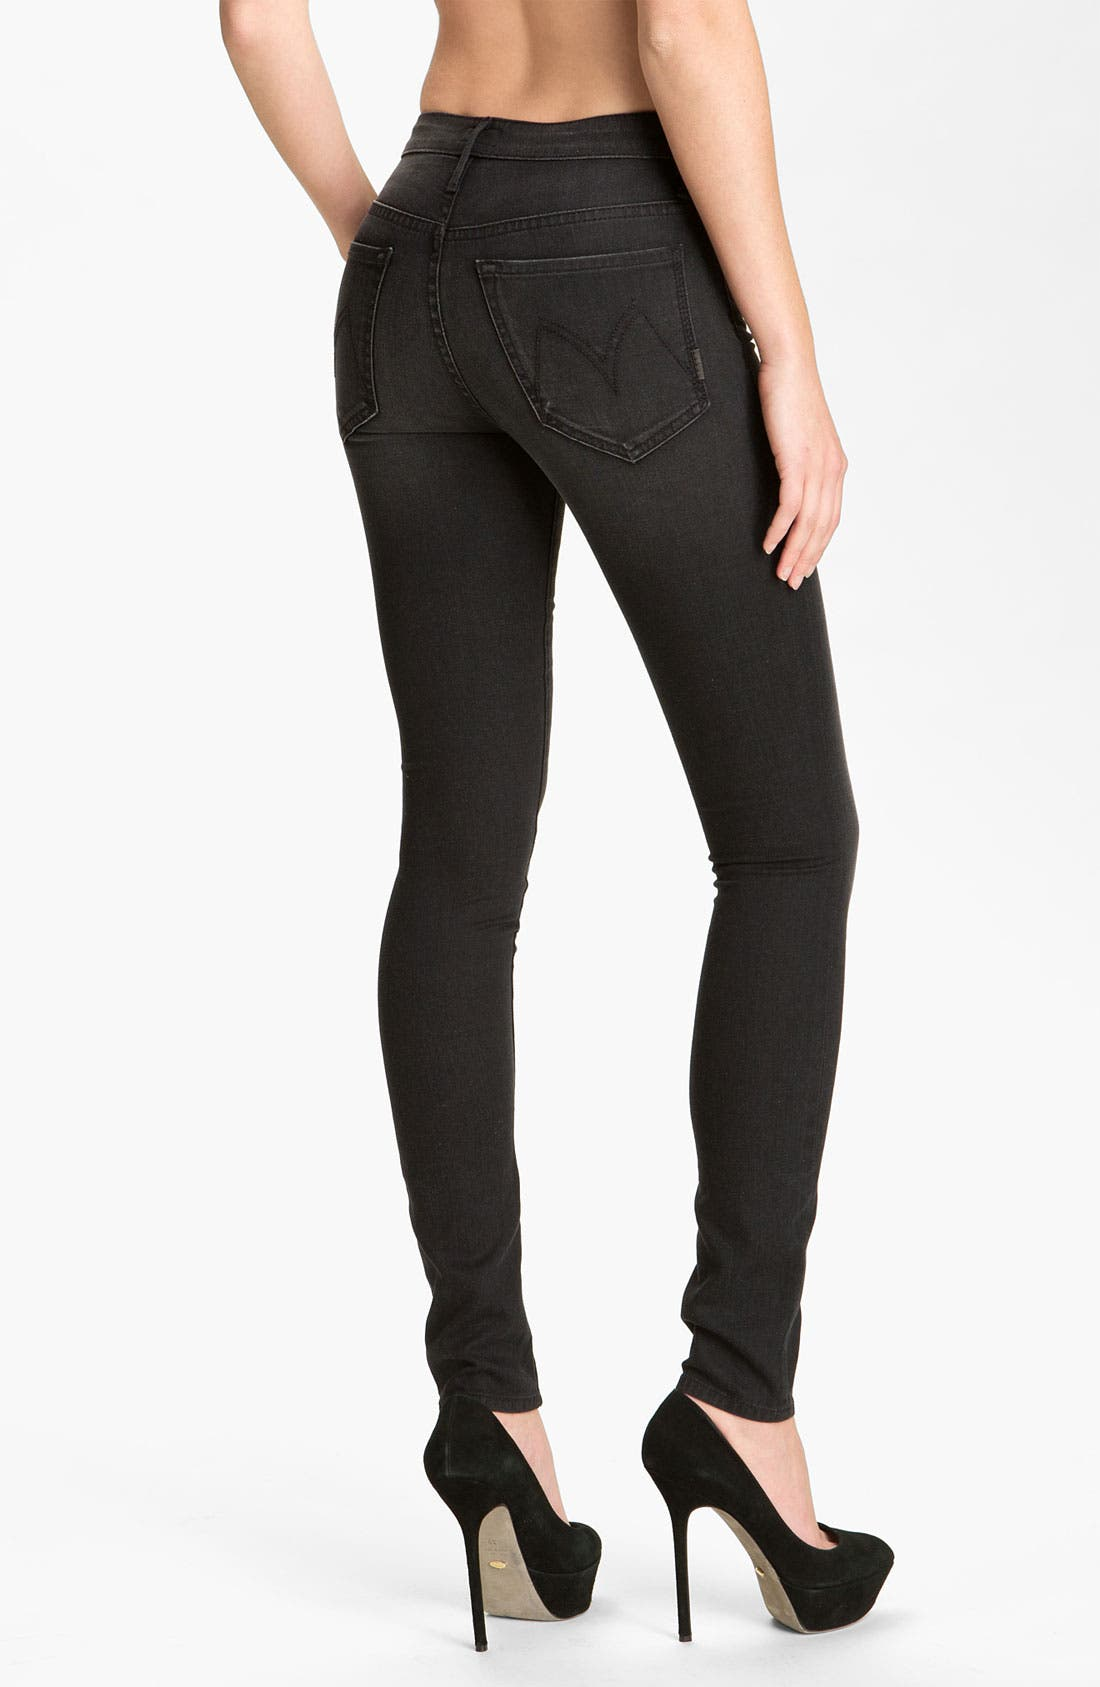 MOTHER, 'The Looker' Skinny Stretch Jeans, Alternate thumbnail 3, color, 001